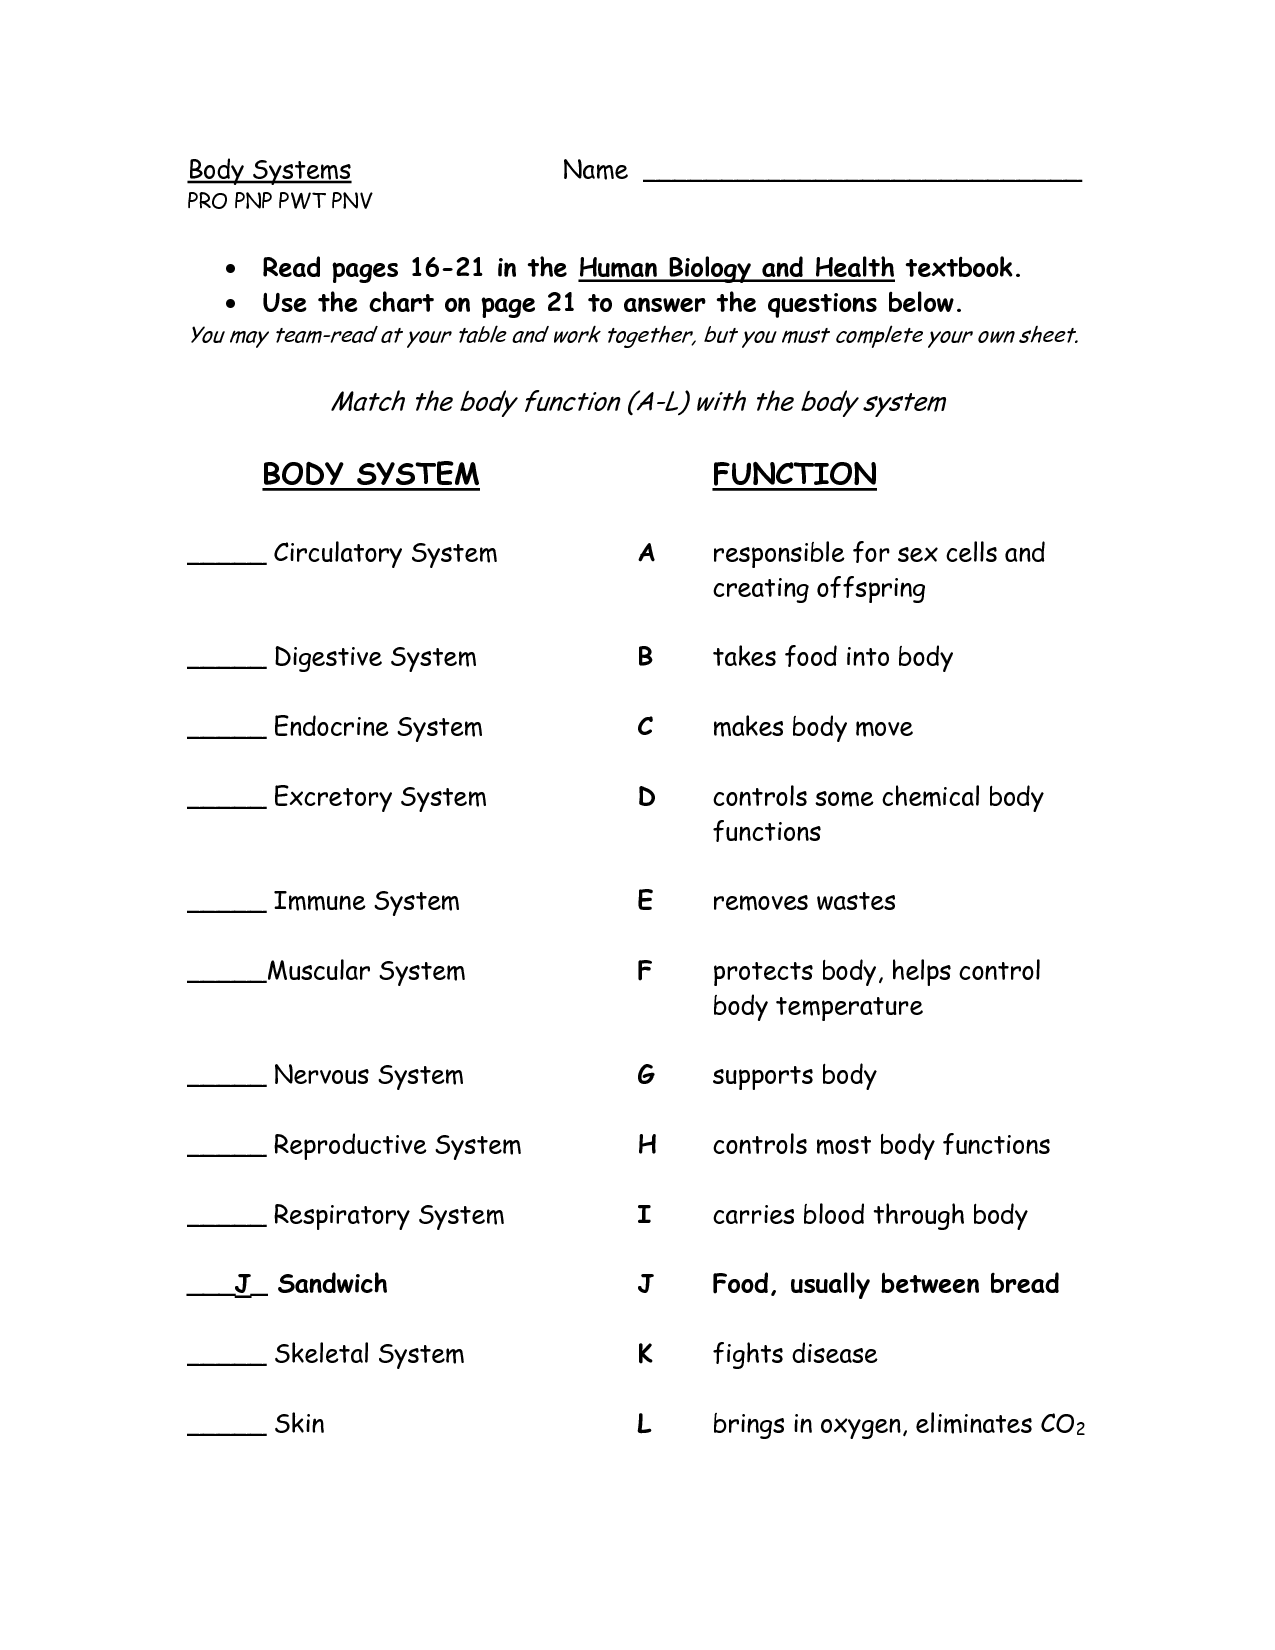 worksheet Human Body Systems Worksheet body systems and functions worksheets instructional activities worksheets